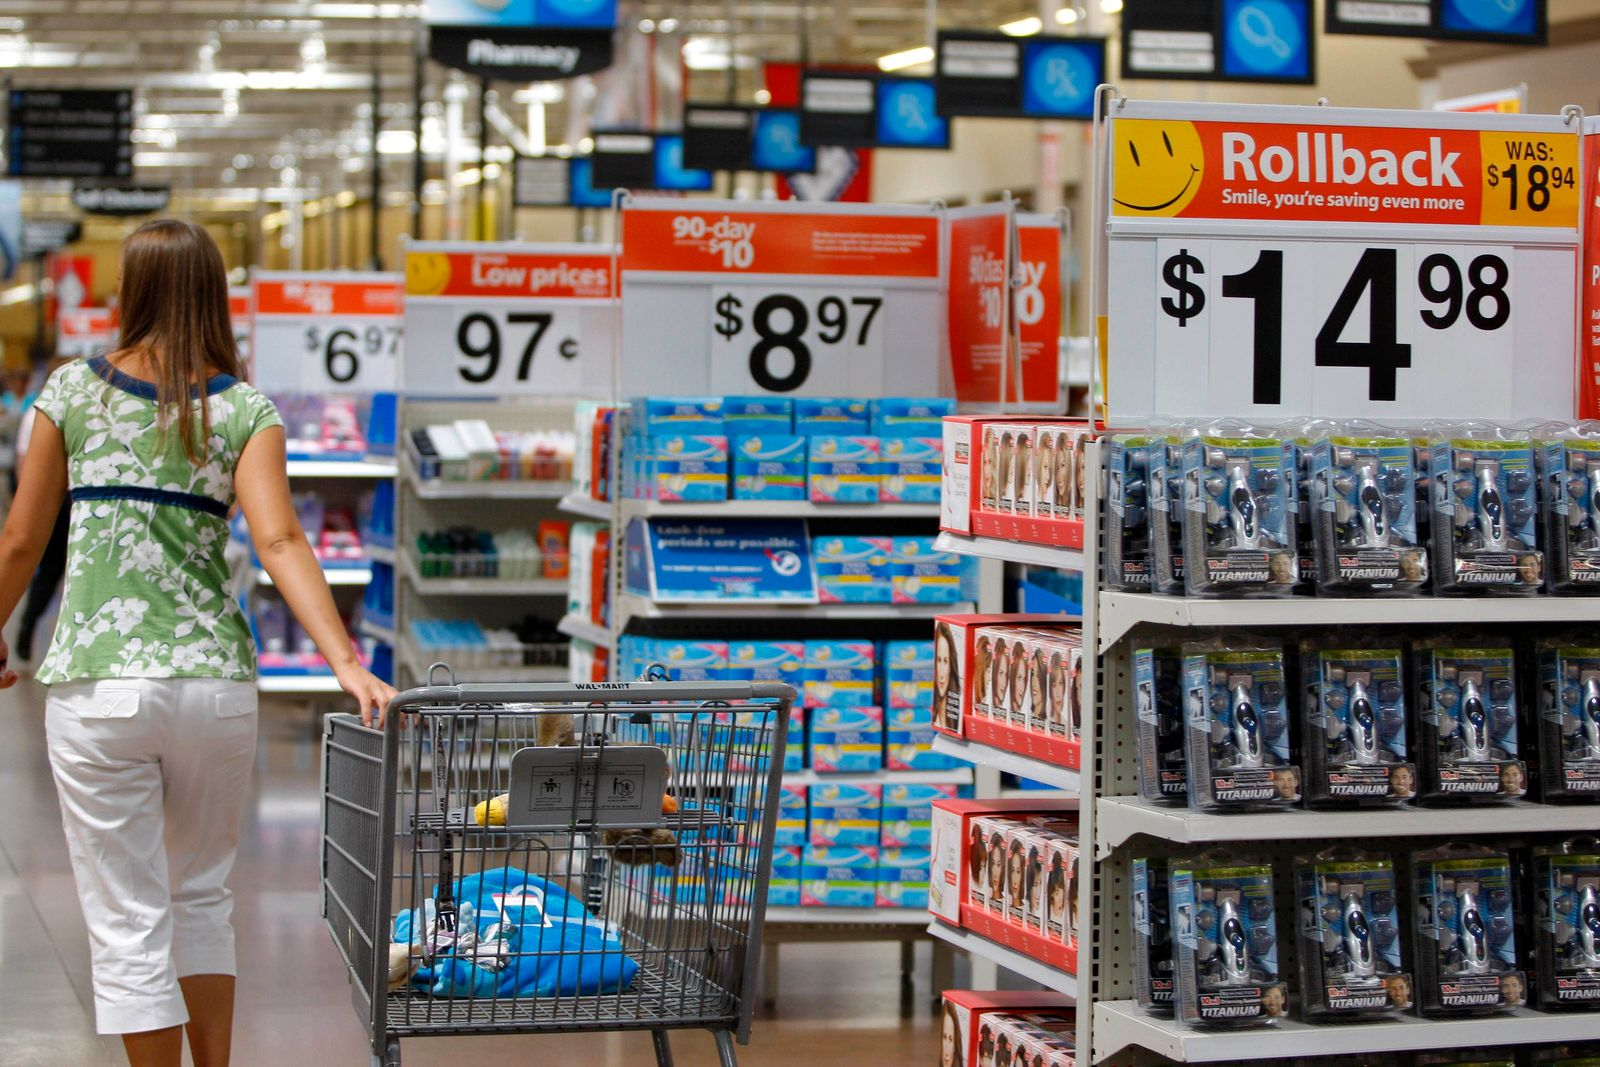 File image of a customer at a Wal-Mart Supercenter in Arkansas